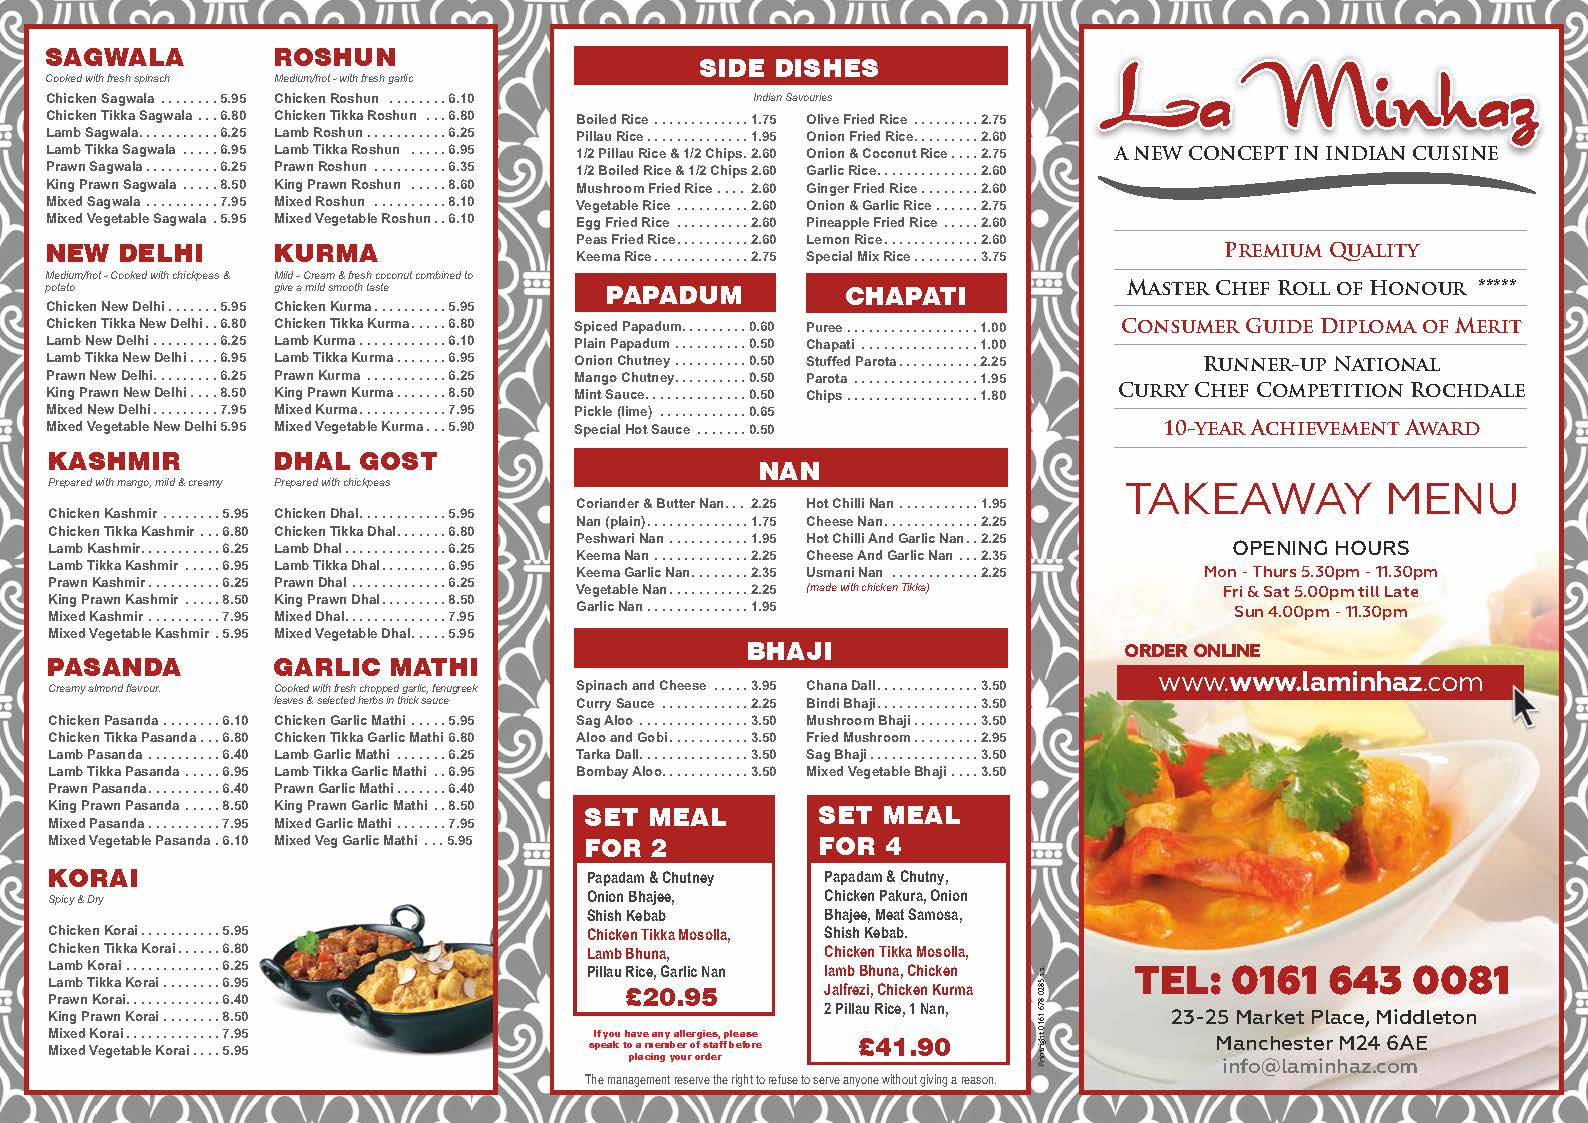 La Minhaz Take Away Menu